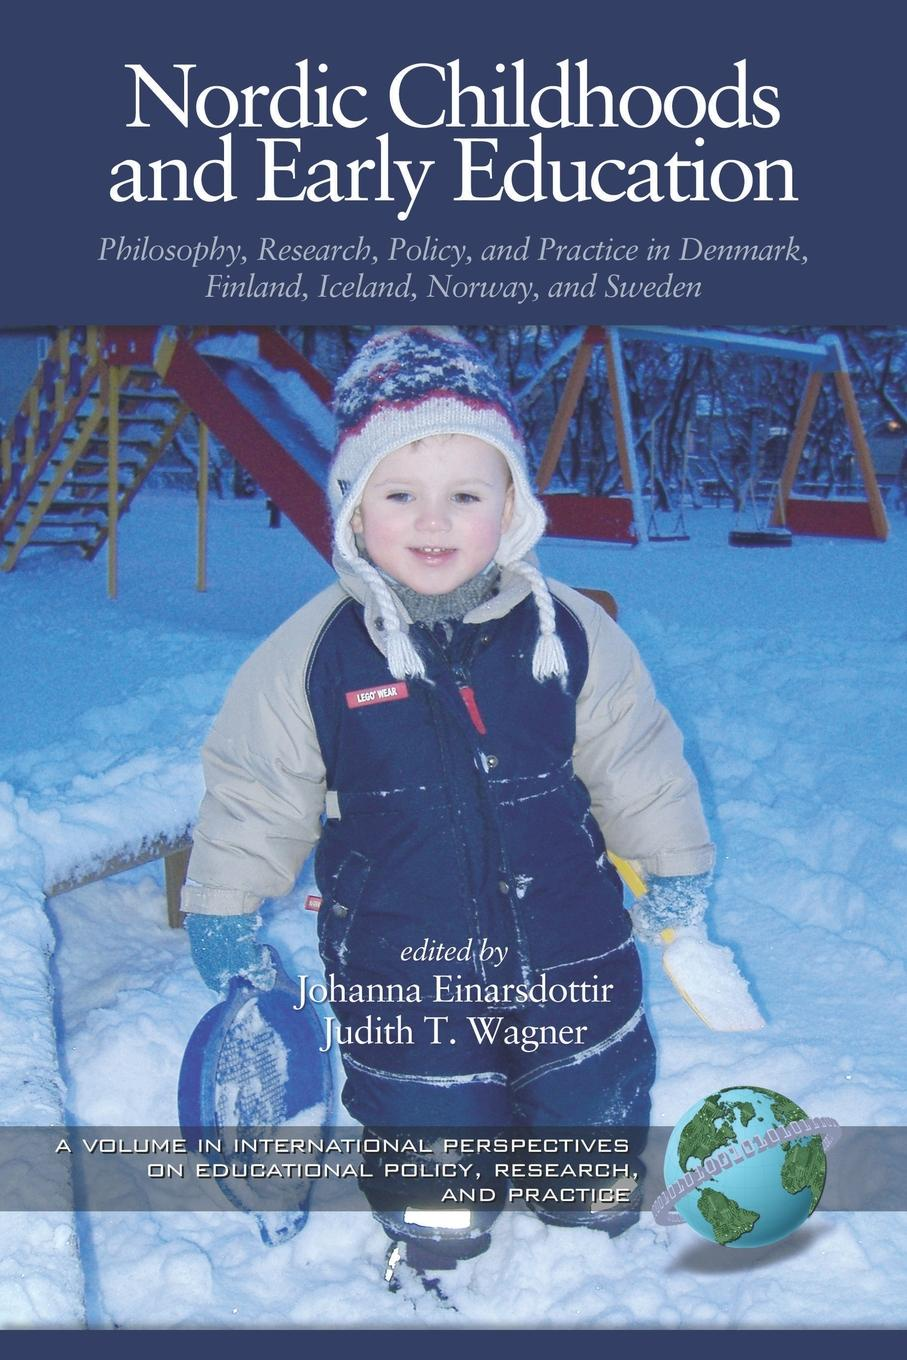 Nordic Childhoods and Early Education. Philosophy, Research, Policy and Practice in Denmark, Finland, Iceland, Norway, and Sweden (PB) harris beider race housing and community perspectives on policy and practice